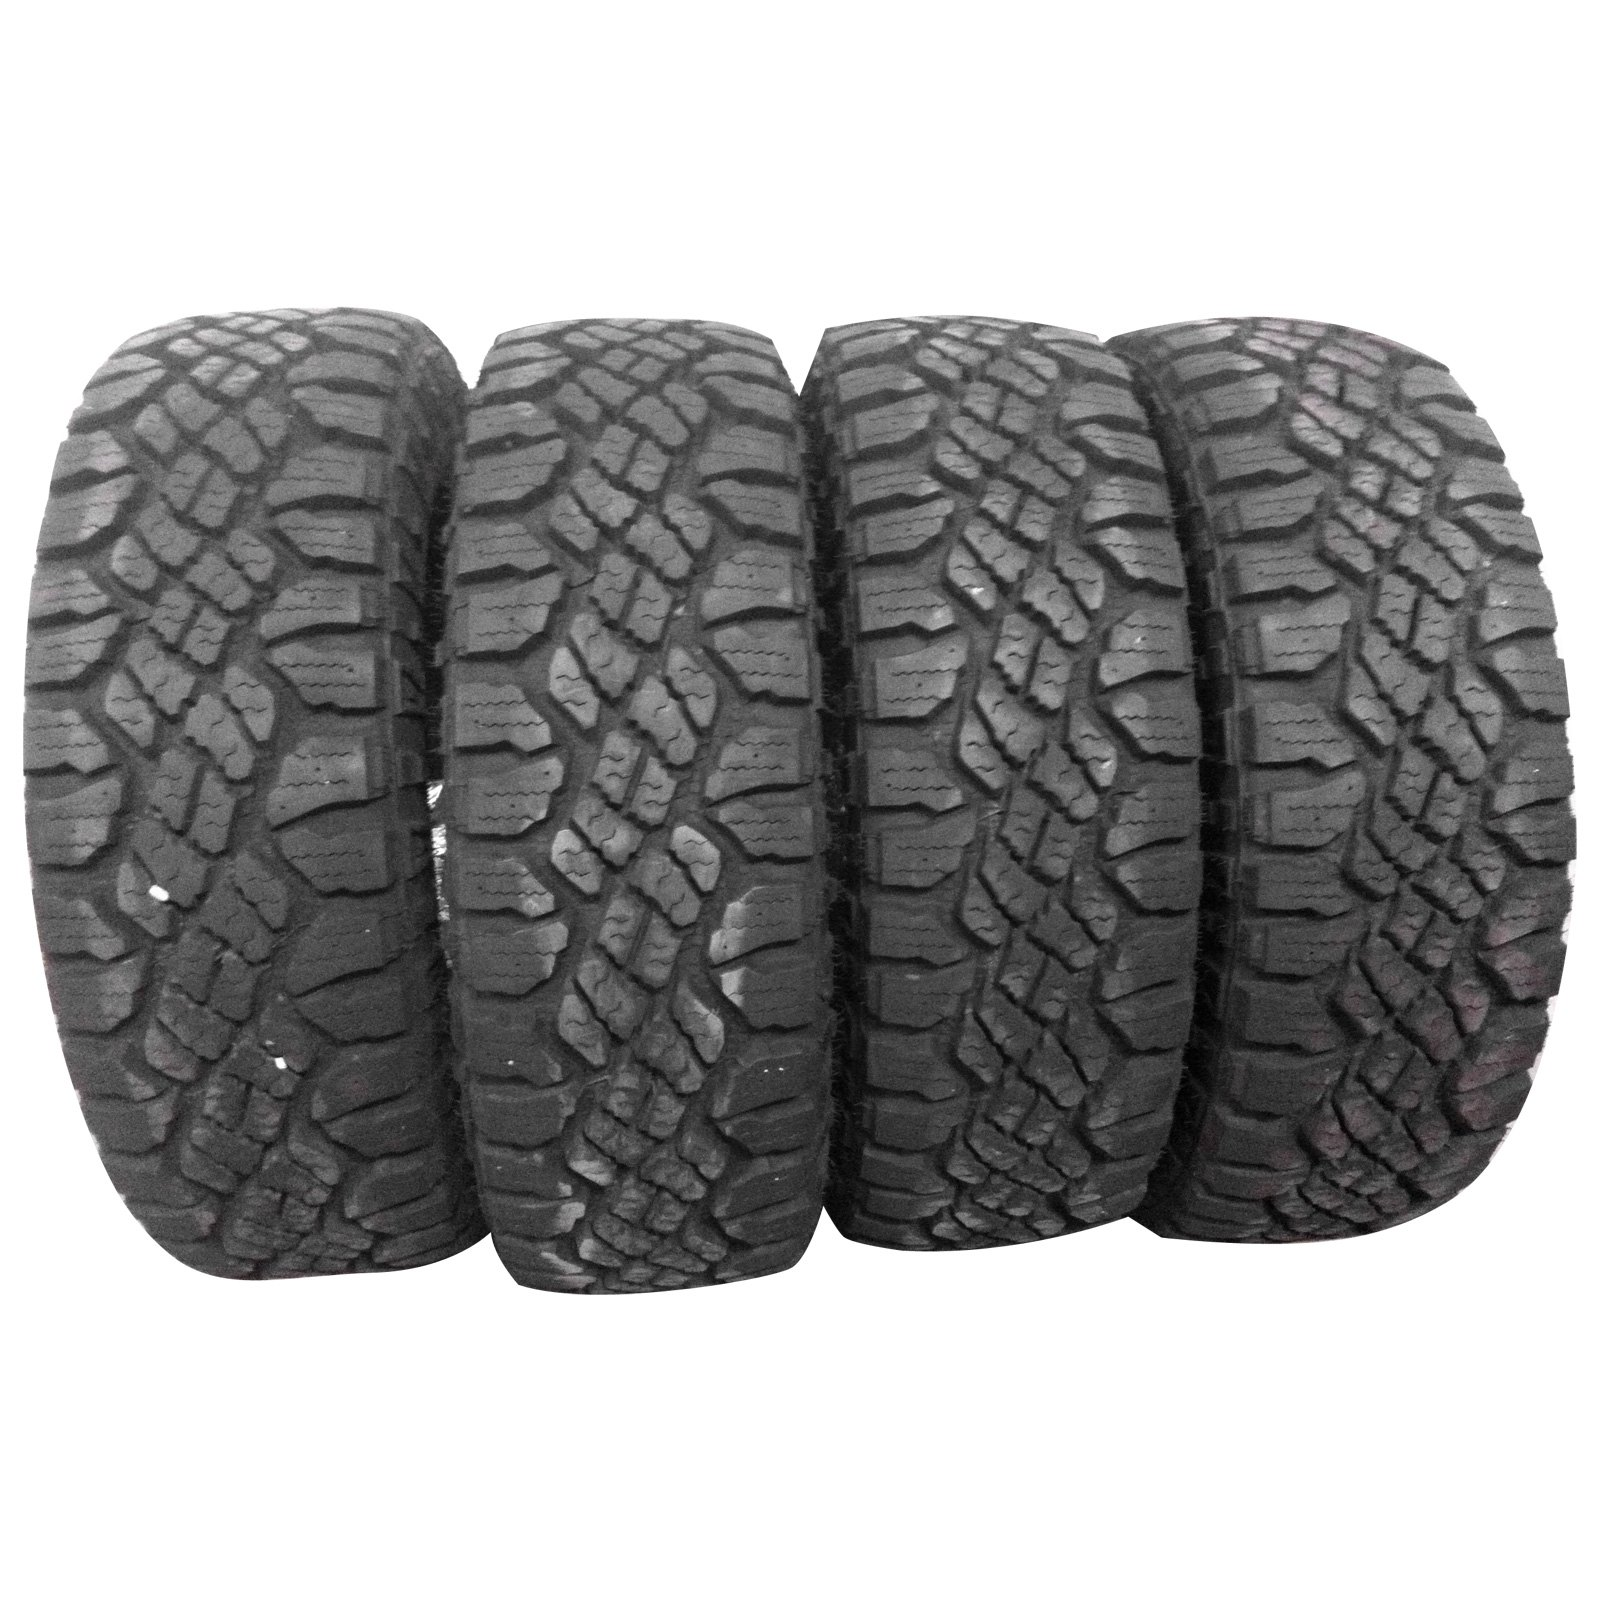 Buy the Goodyear Wrangler Radial (P) online today for all-terrain traction and an economical tread design for pick up trucks.